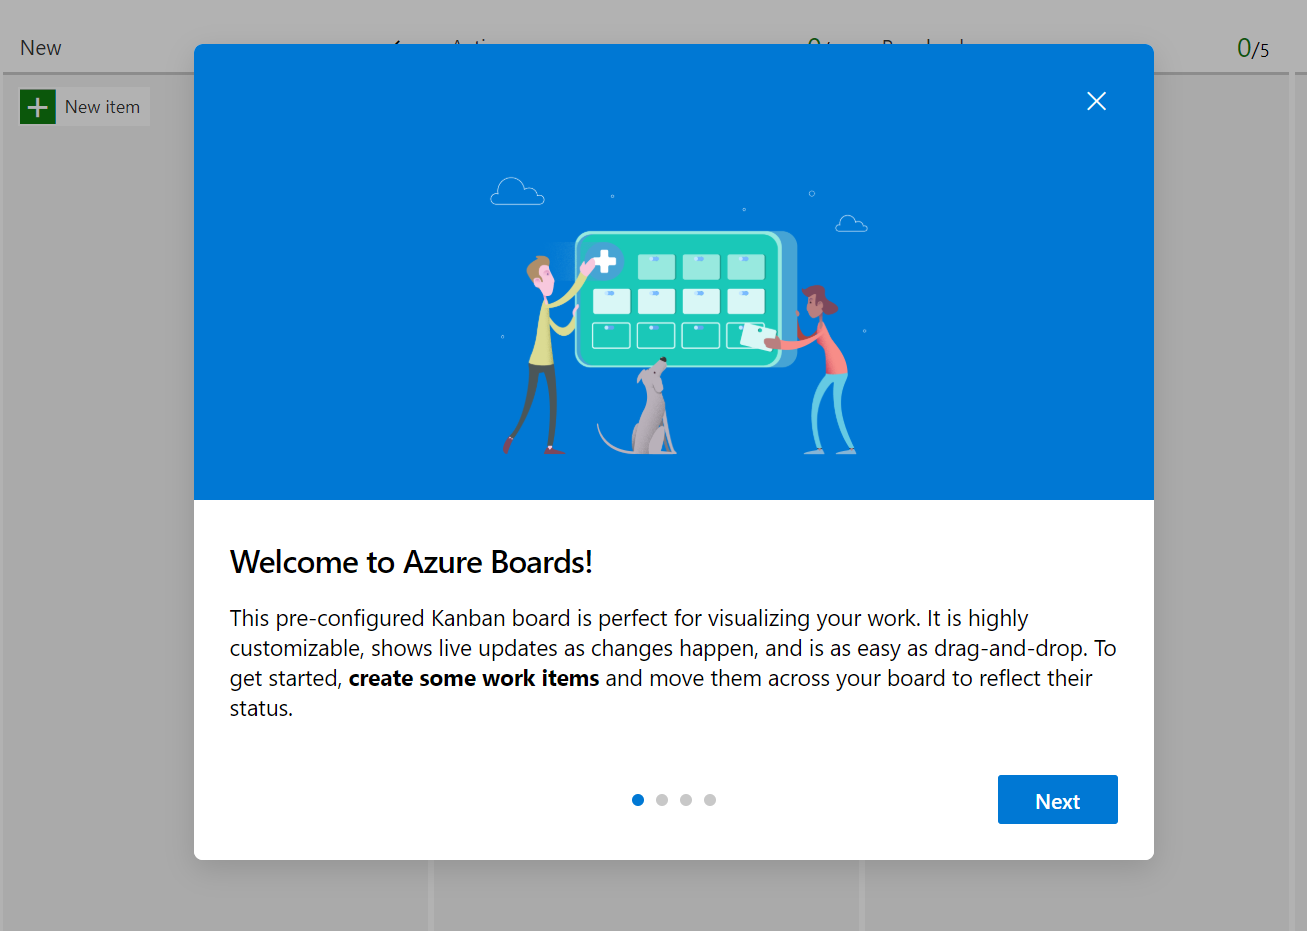 Azure Boards Welcome